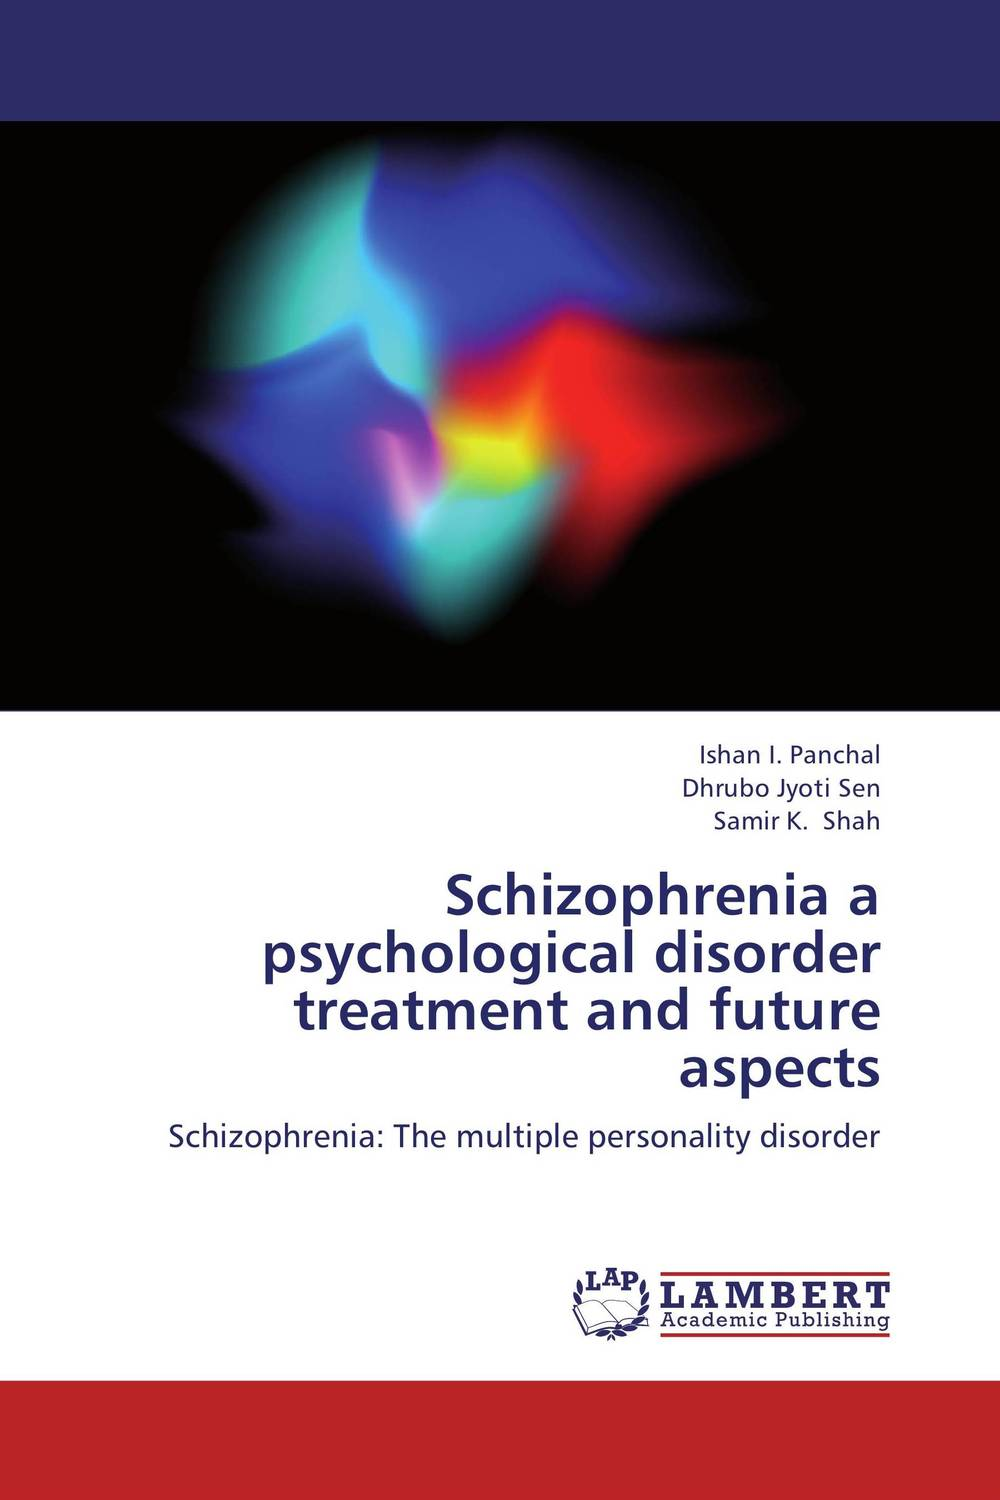 Schizophrenia a psychological disorder treatment and future aspects serine protease inhibitors